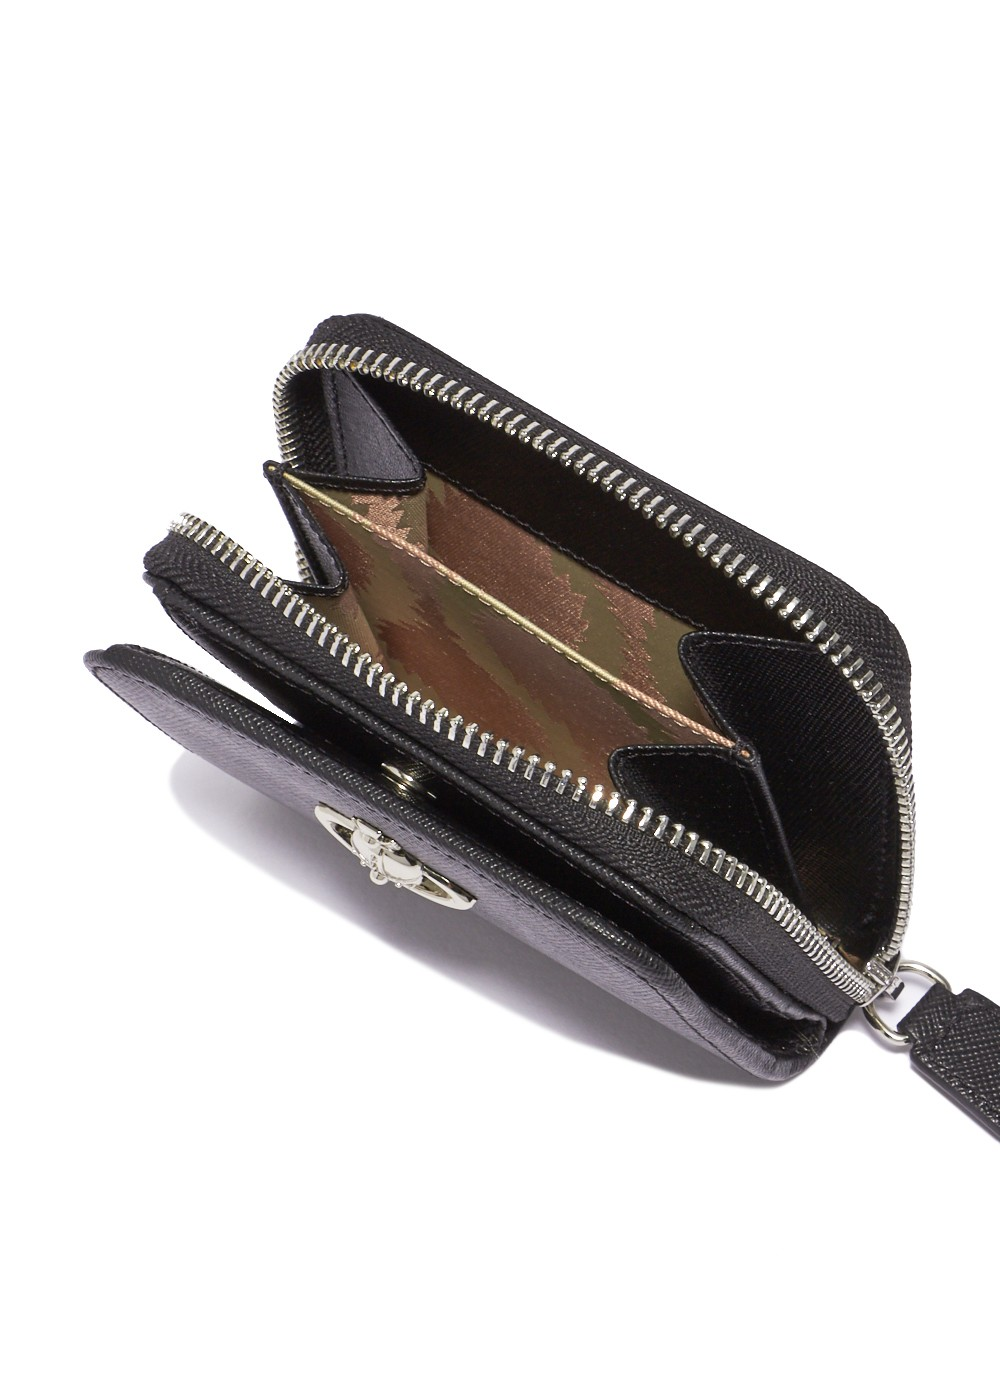 【最大59%OFF】【6/6入荷】PIMLICO MEDIUM ZIP WALLET|BLACK|レディース財布|Vivienne Westwood